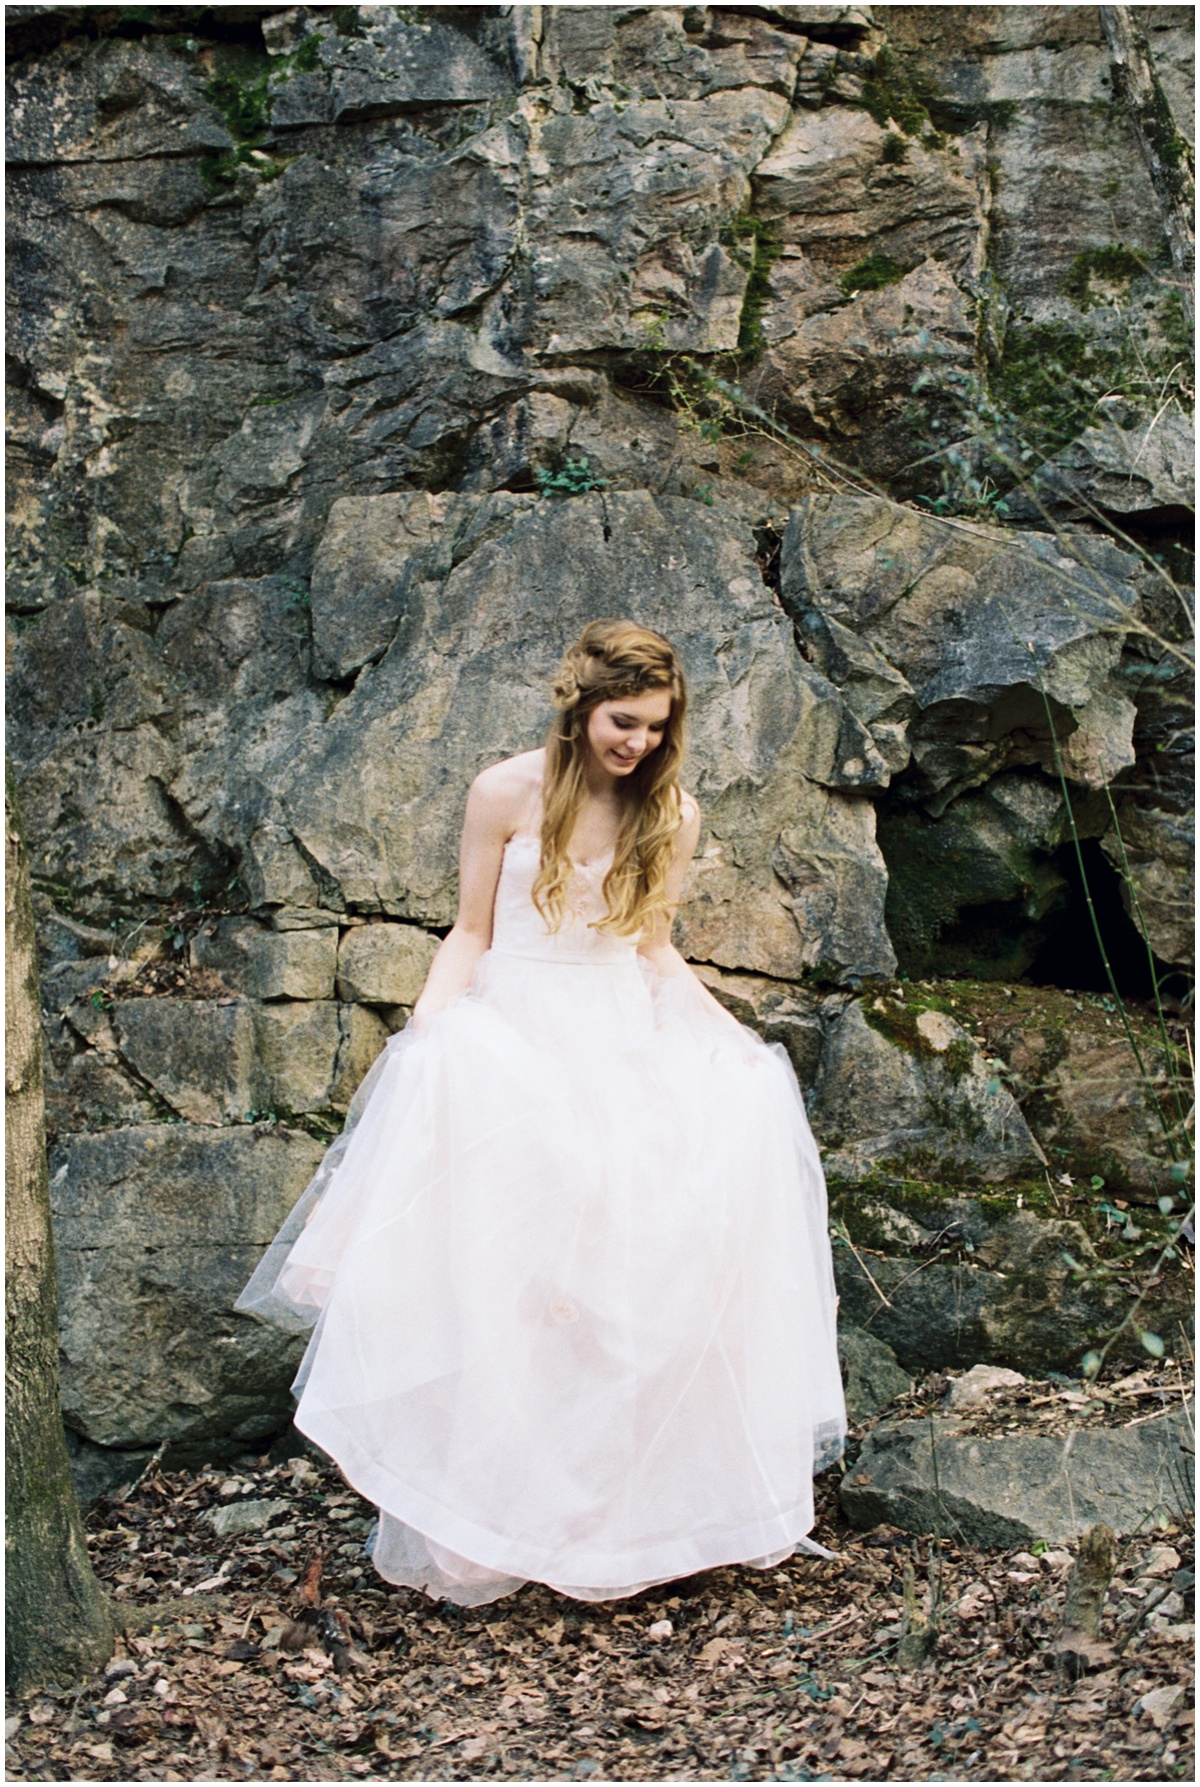 Abigail_Malone_Film_Wedding_Photography_KNoxville_TN_Blush_Dress_Outdoor_Windy_Pink_and_Green_Wedding_0039.jpg